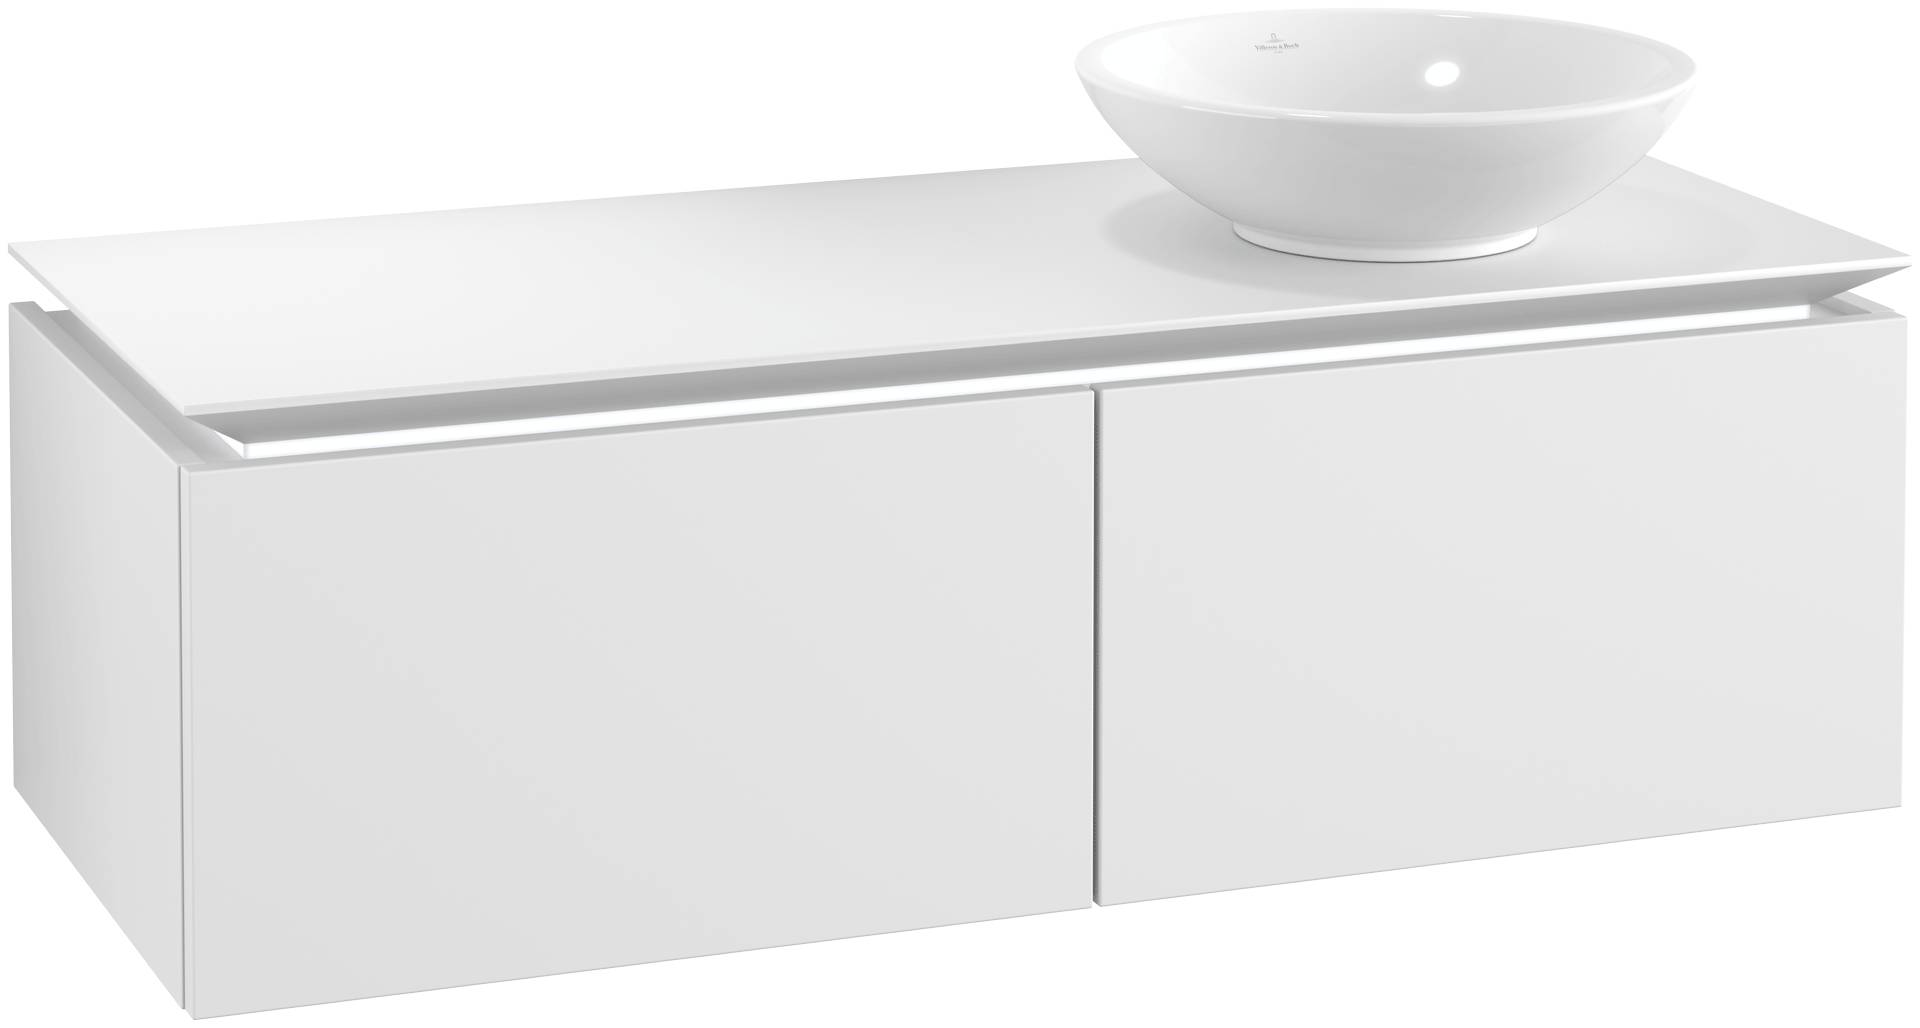 Villeroy & Boch Villeroy & Boch Legato - Meuble sous lavabo with 2 drawers & 1 cut-out right 1200 x 380 x 500mm blanc mat